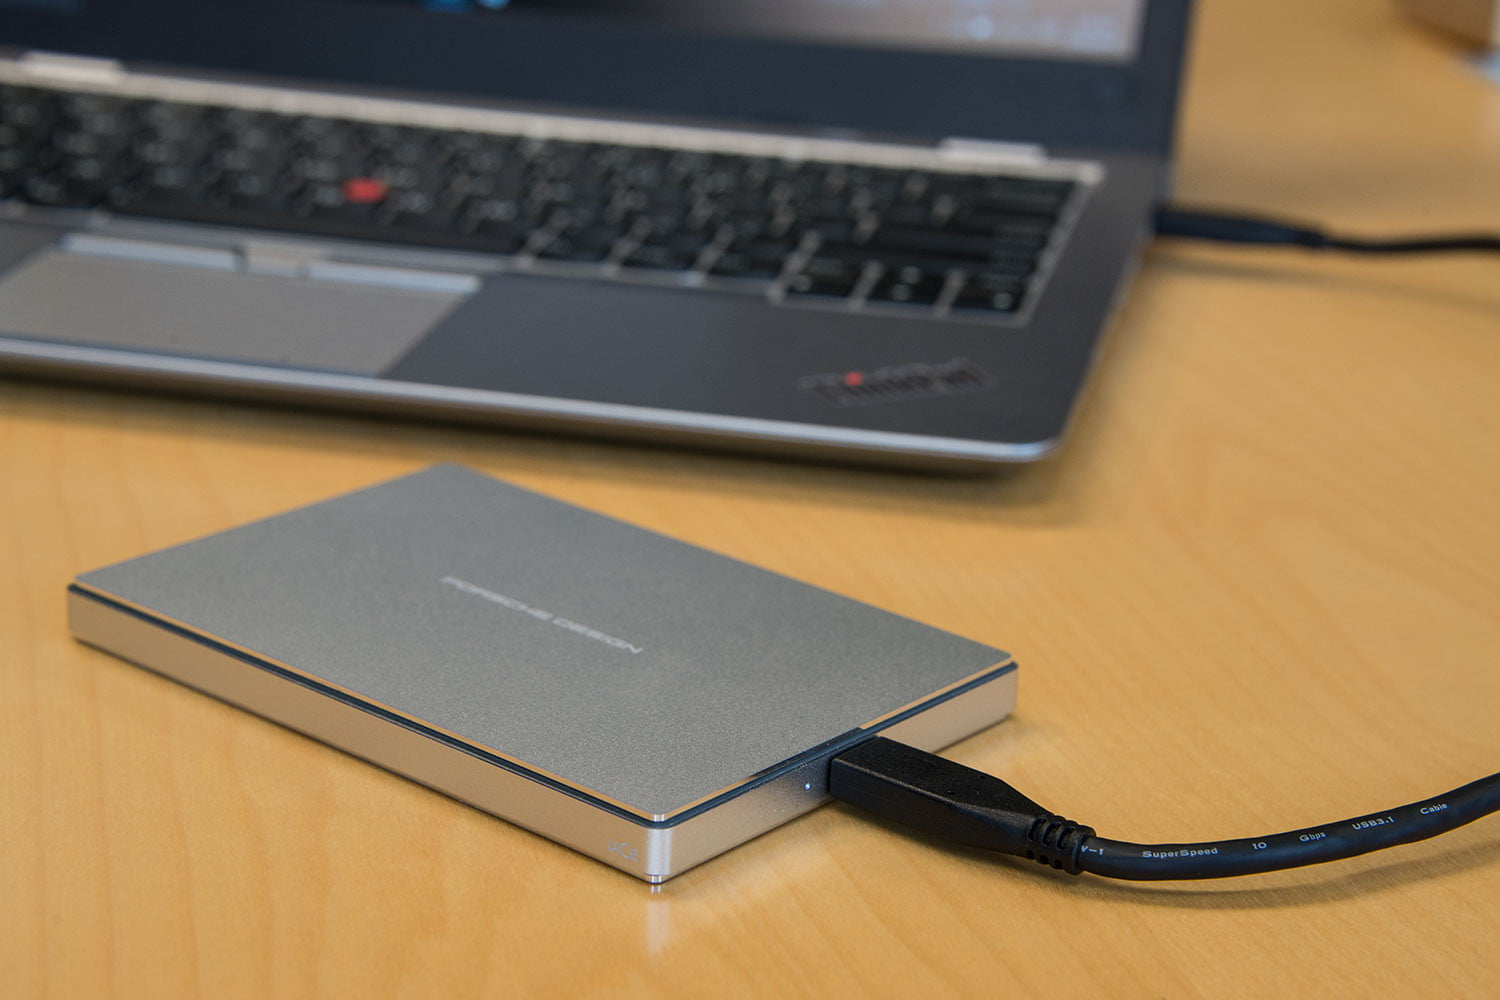 Lacie 2tb Porsche Design External Hard Drive Review